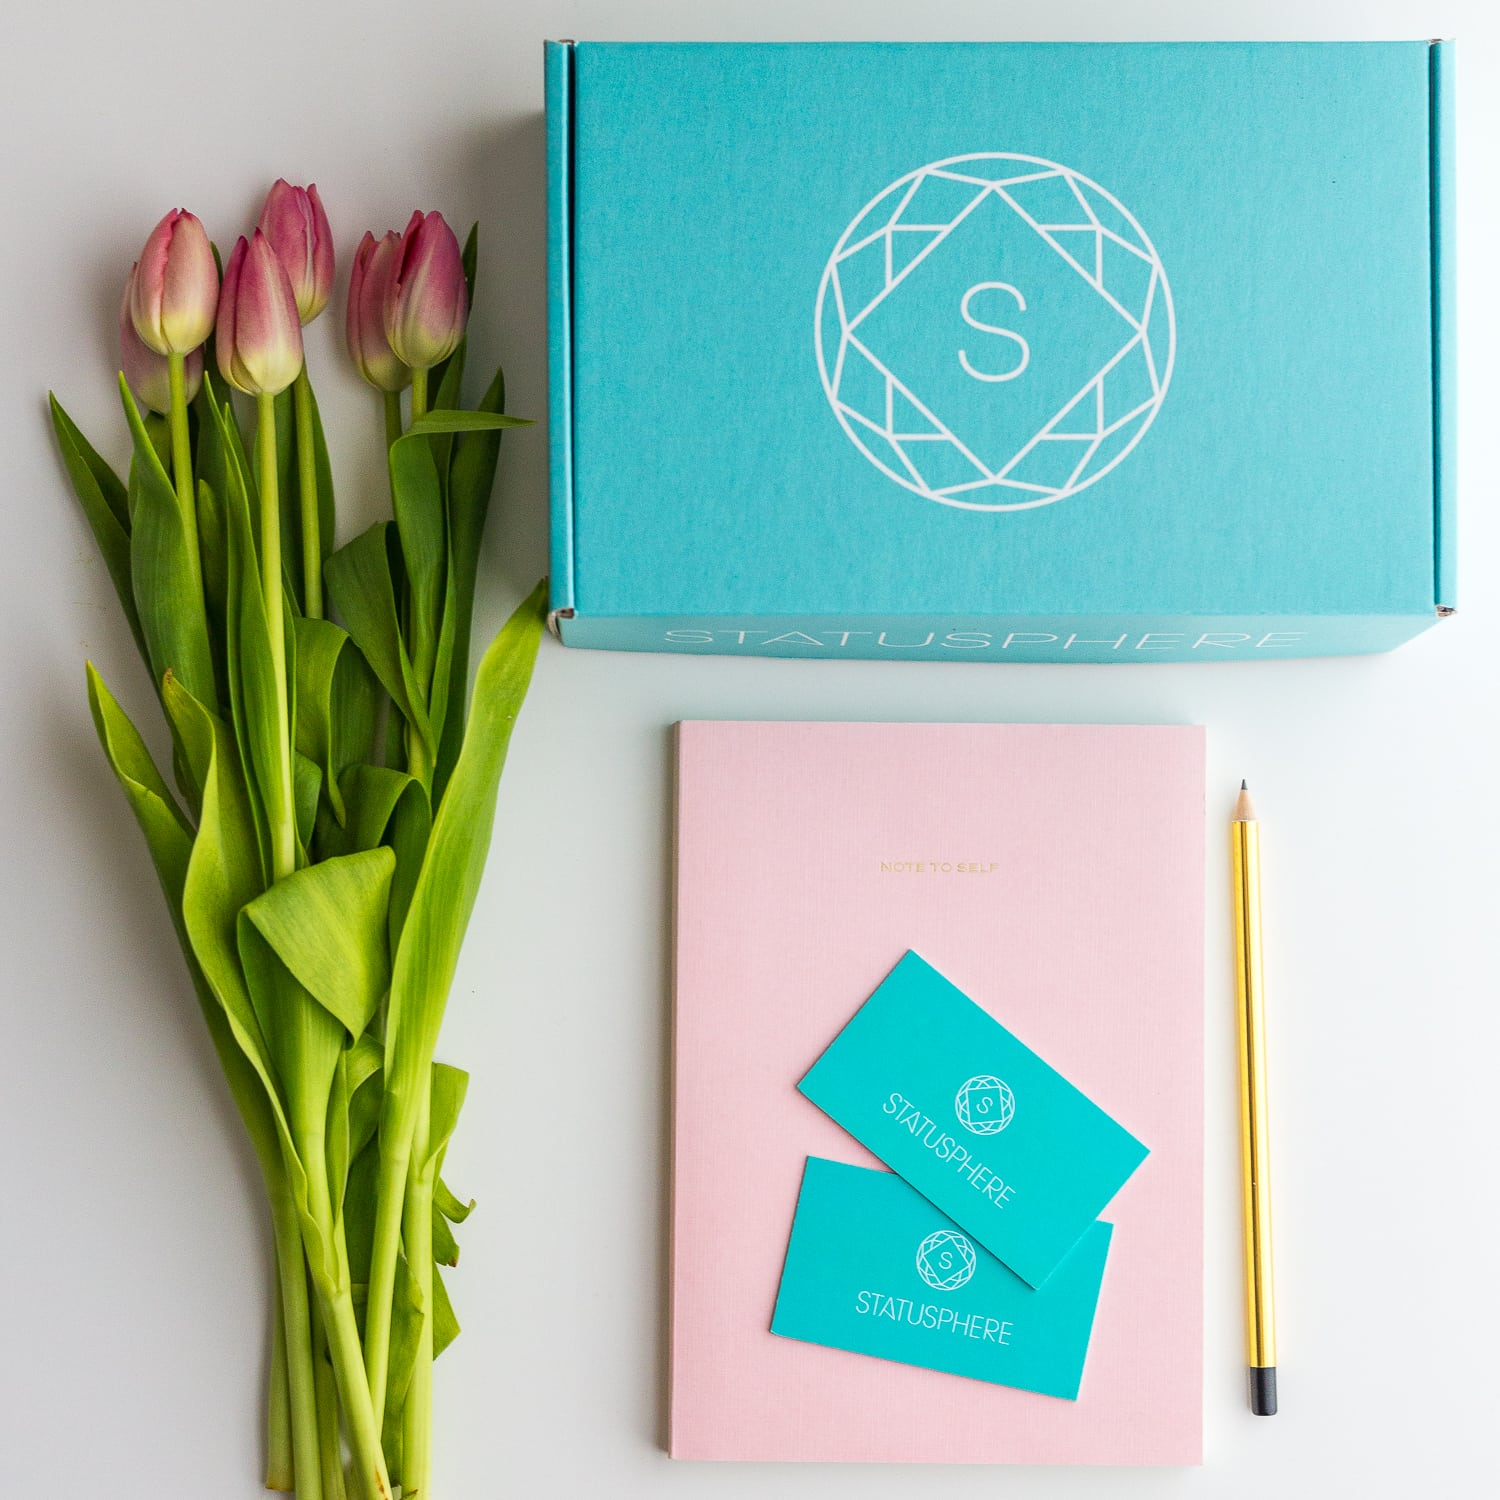 Influencer Gifting vs Paid Collaborations